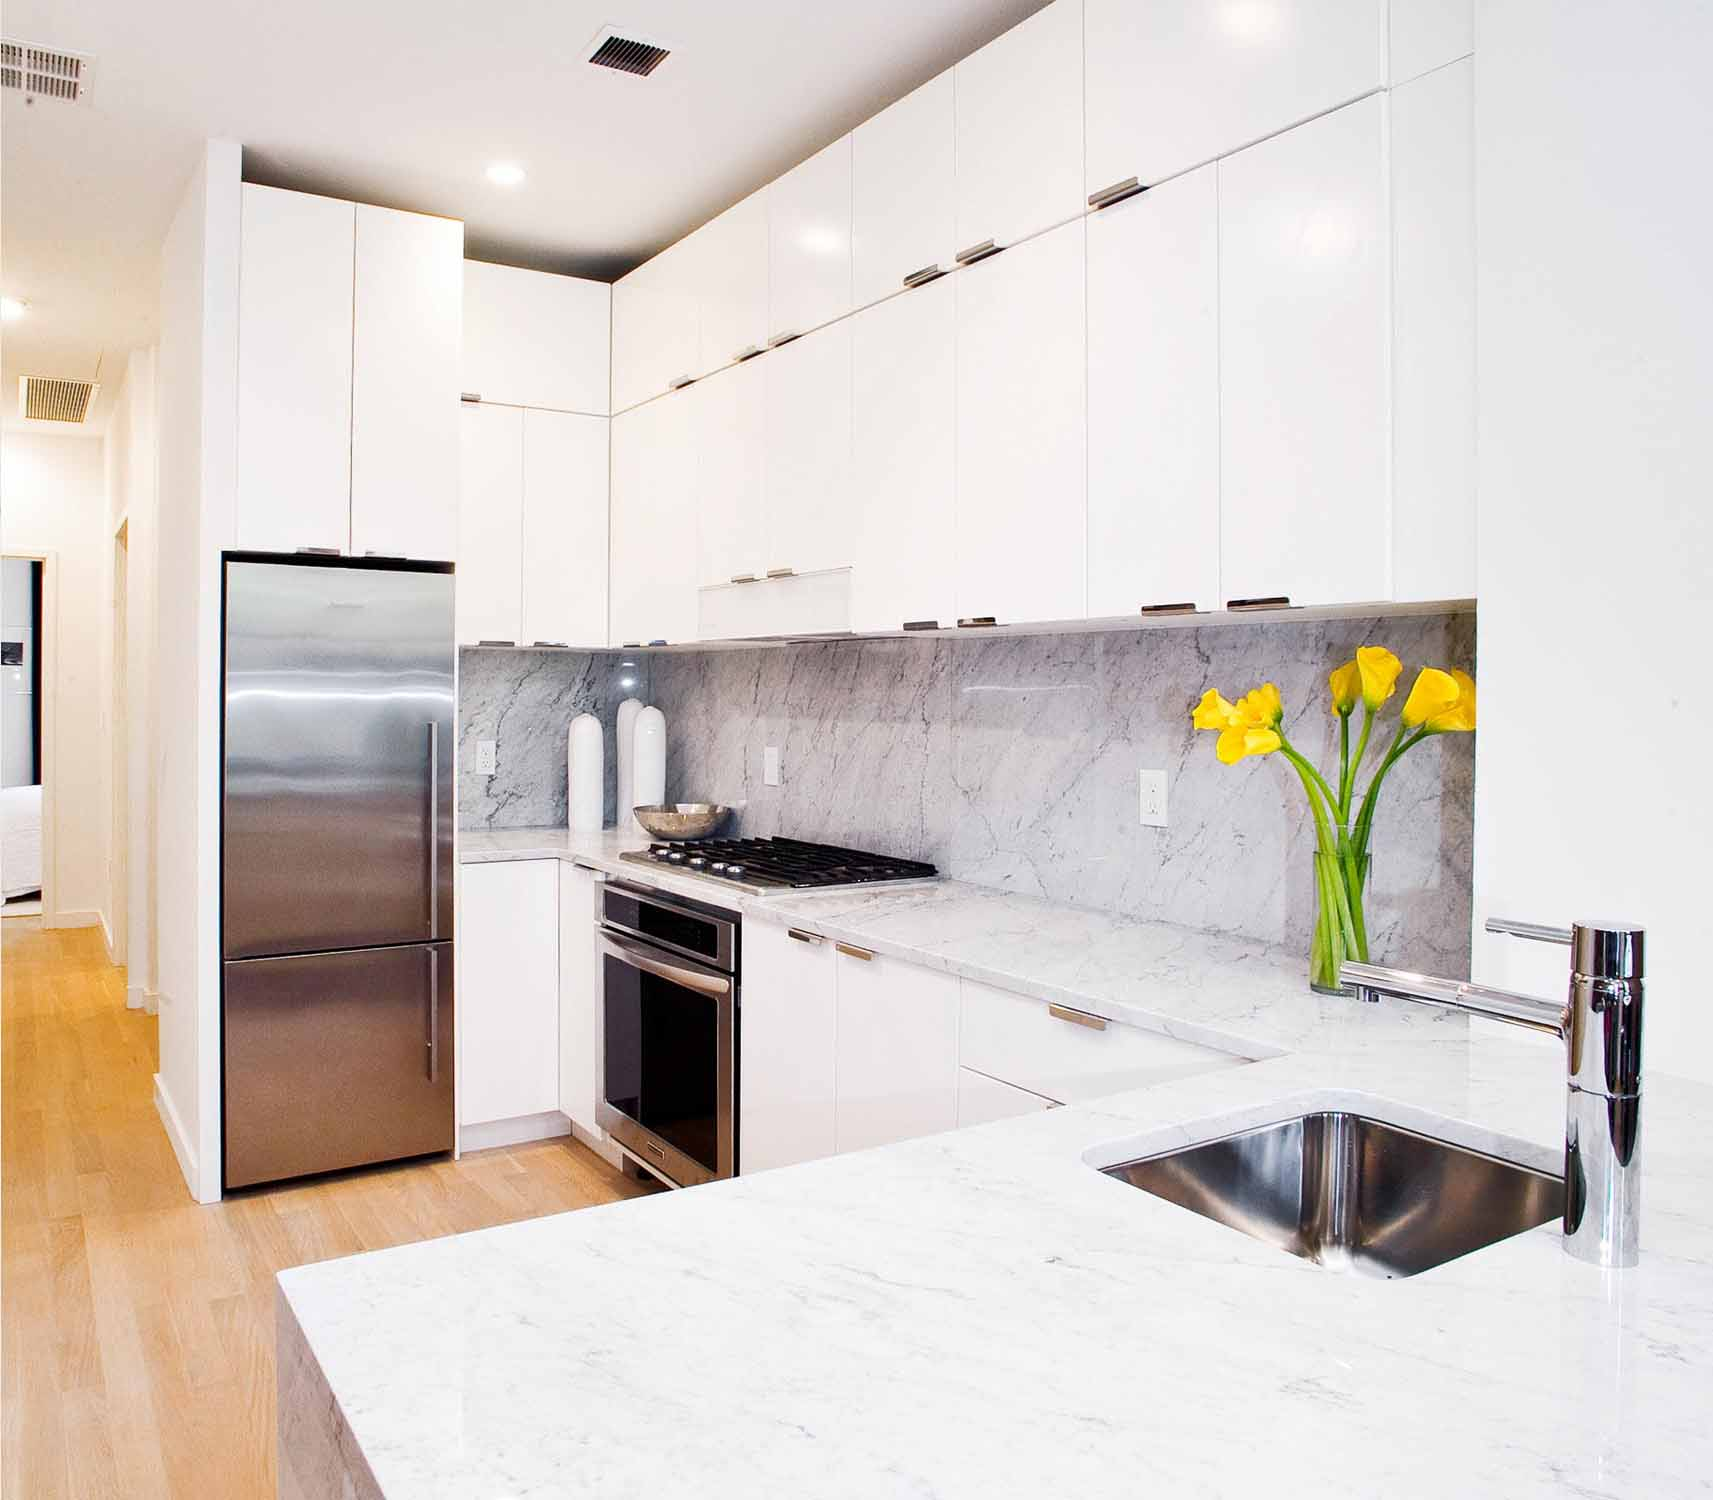 Harlem Chic Continues with Renovated Brownstone | Manhattan News